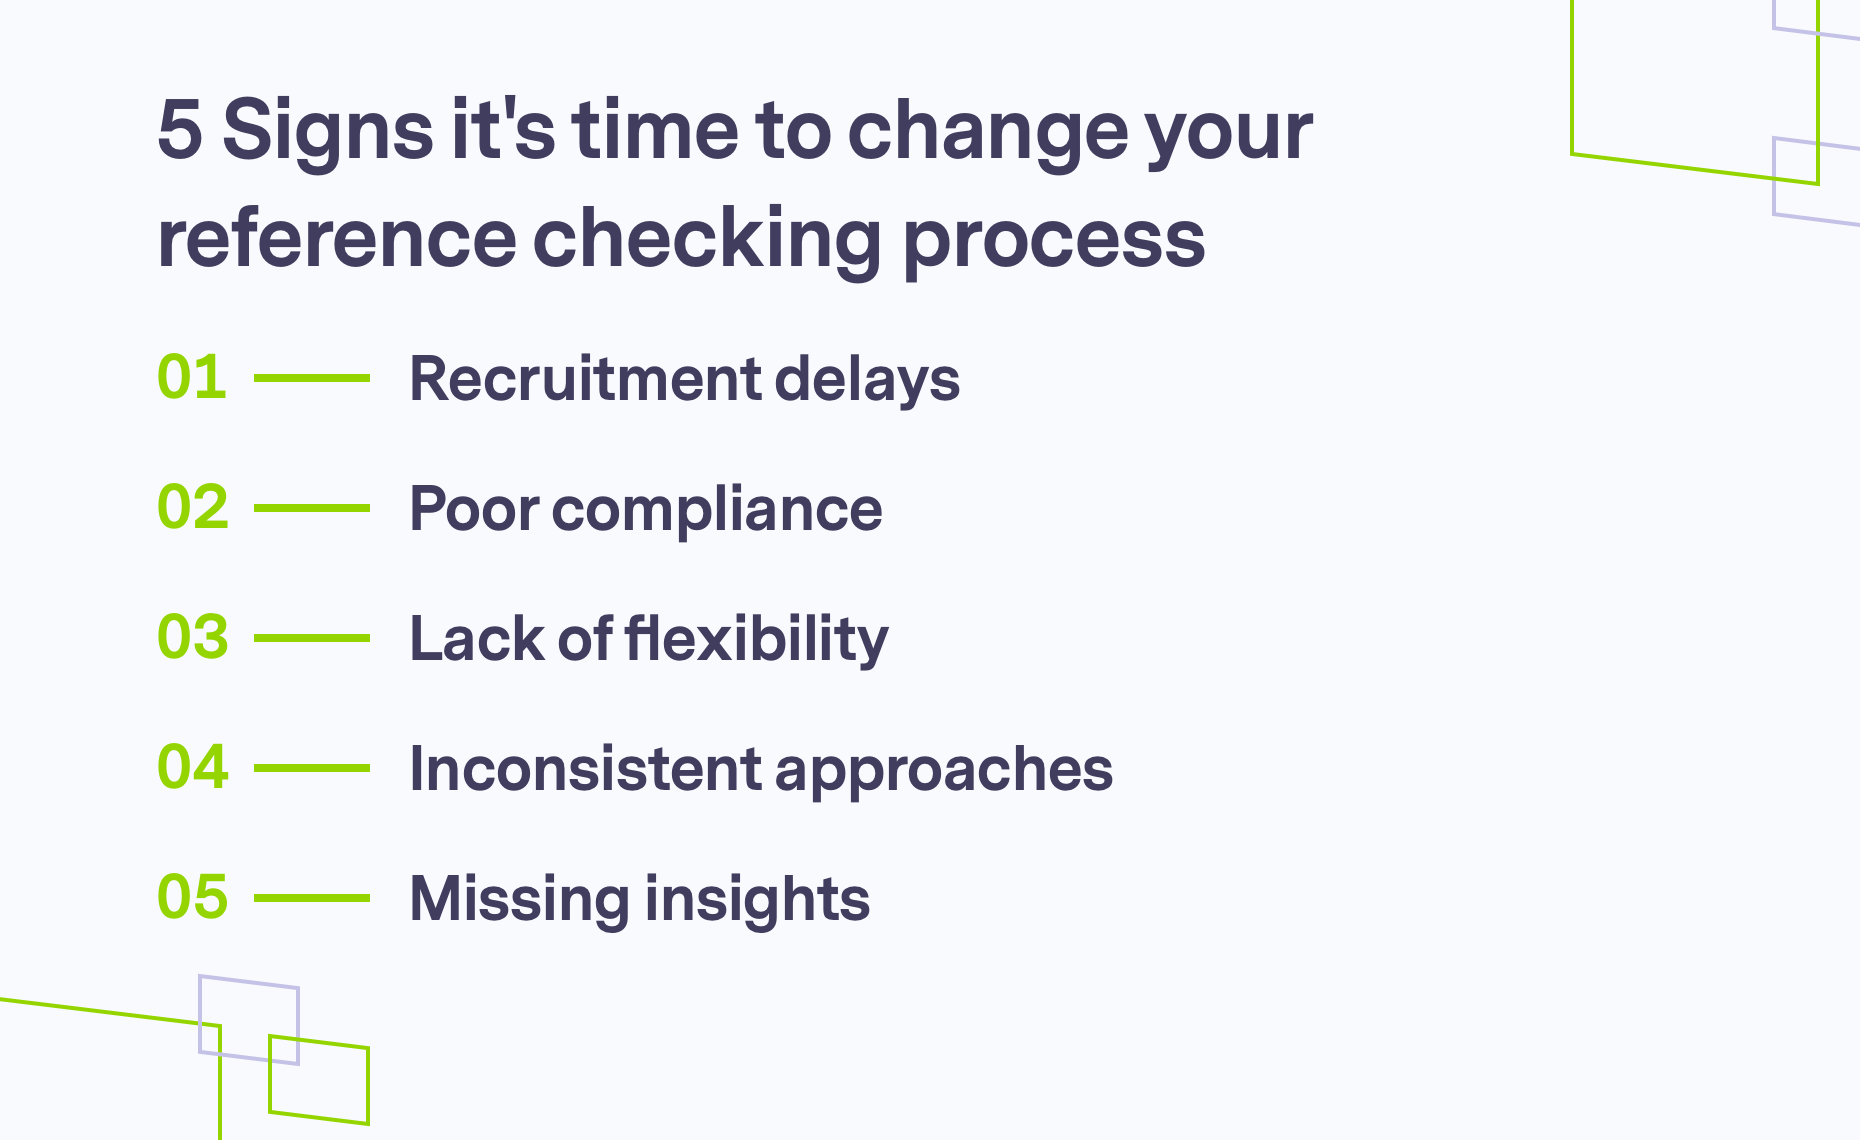 5 Signs it's time to change reference checking process